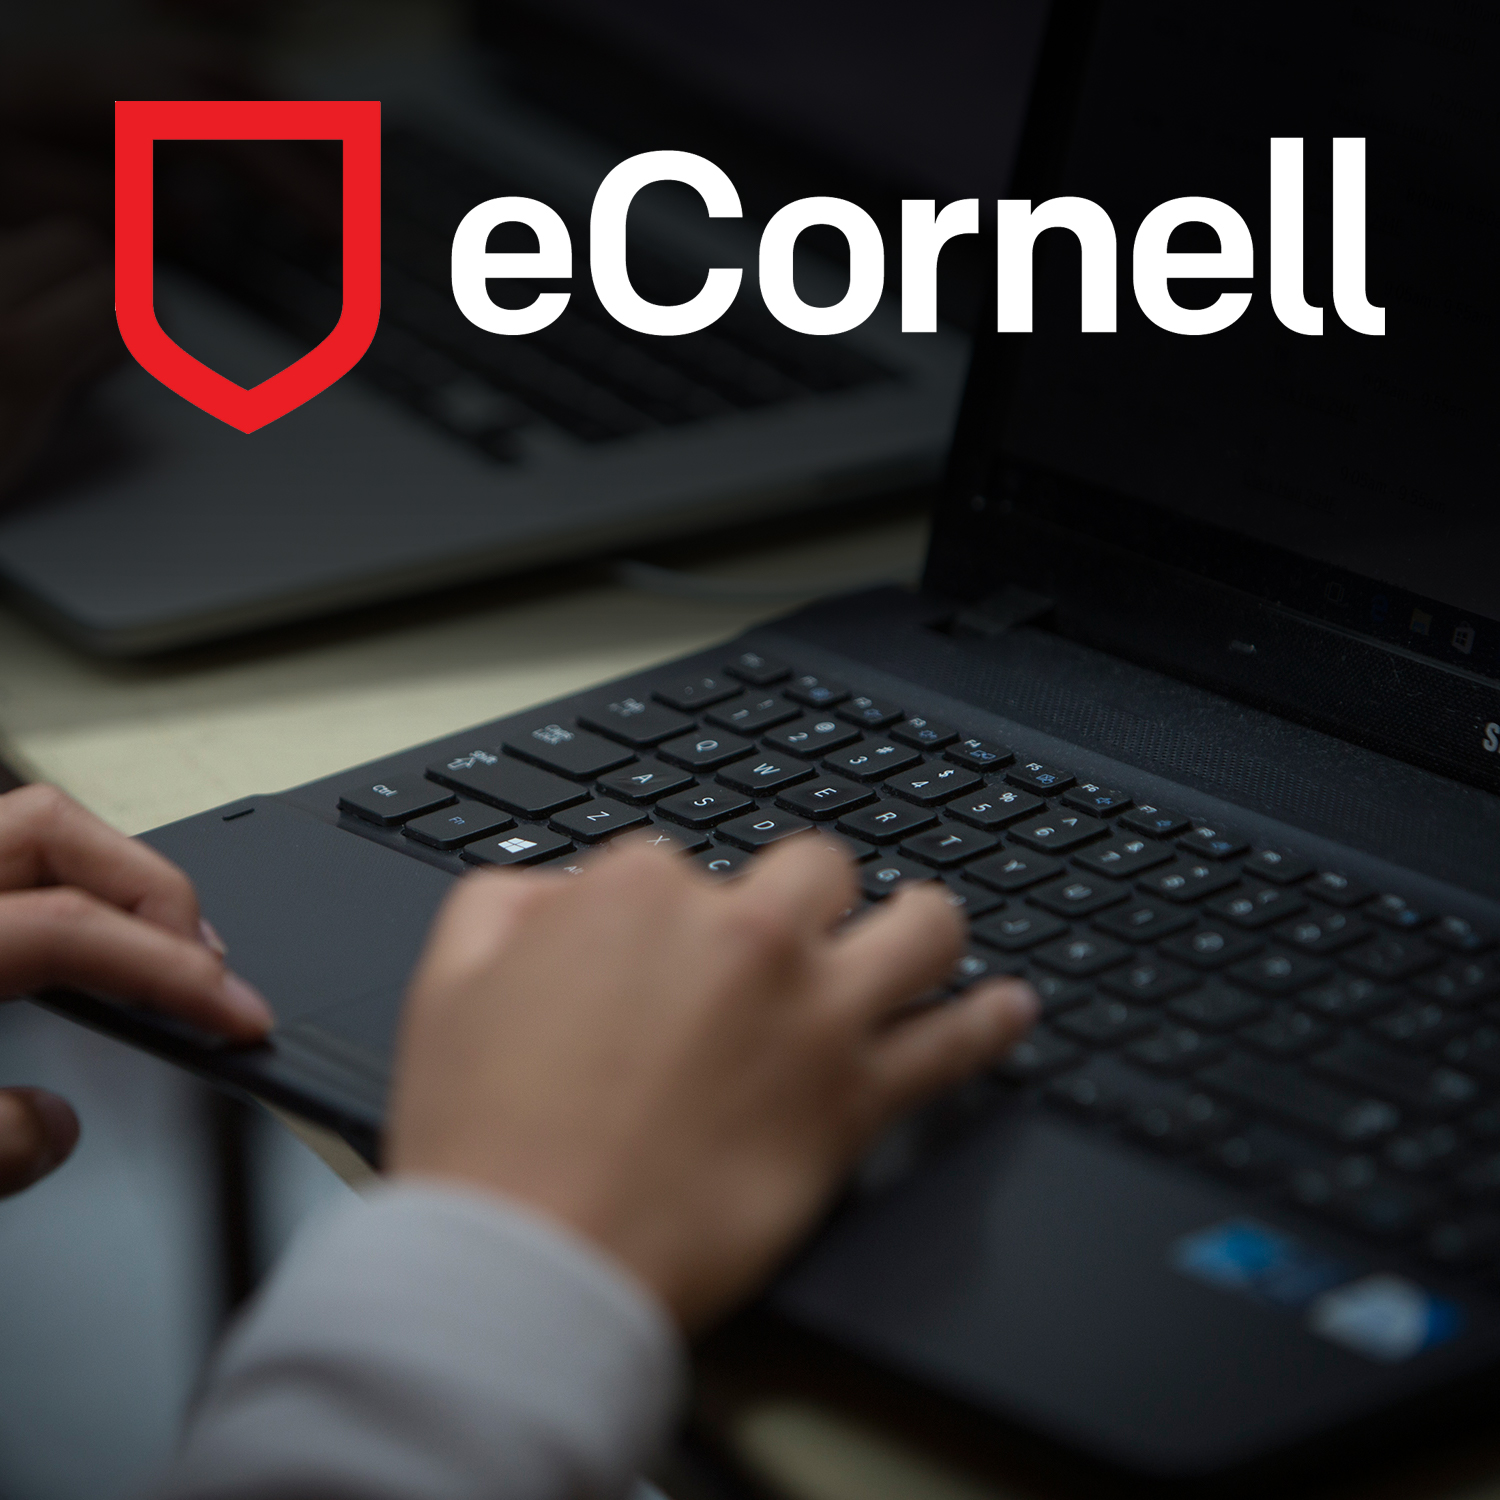 laptop with eCornell logo